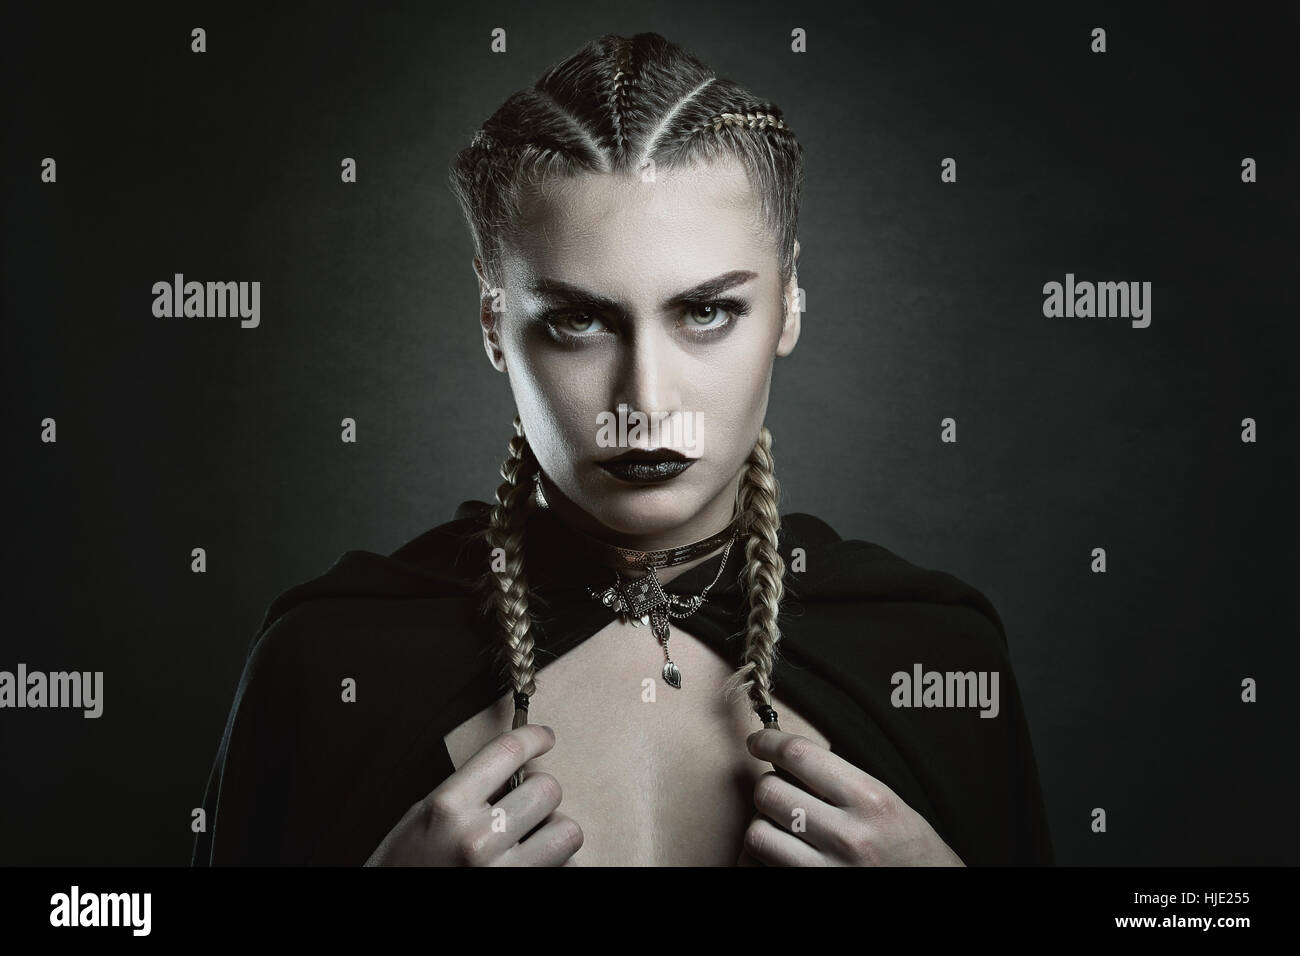 Fashion portrait d'une femme vampire . Horreur et Halloween Photo Stock